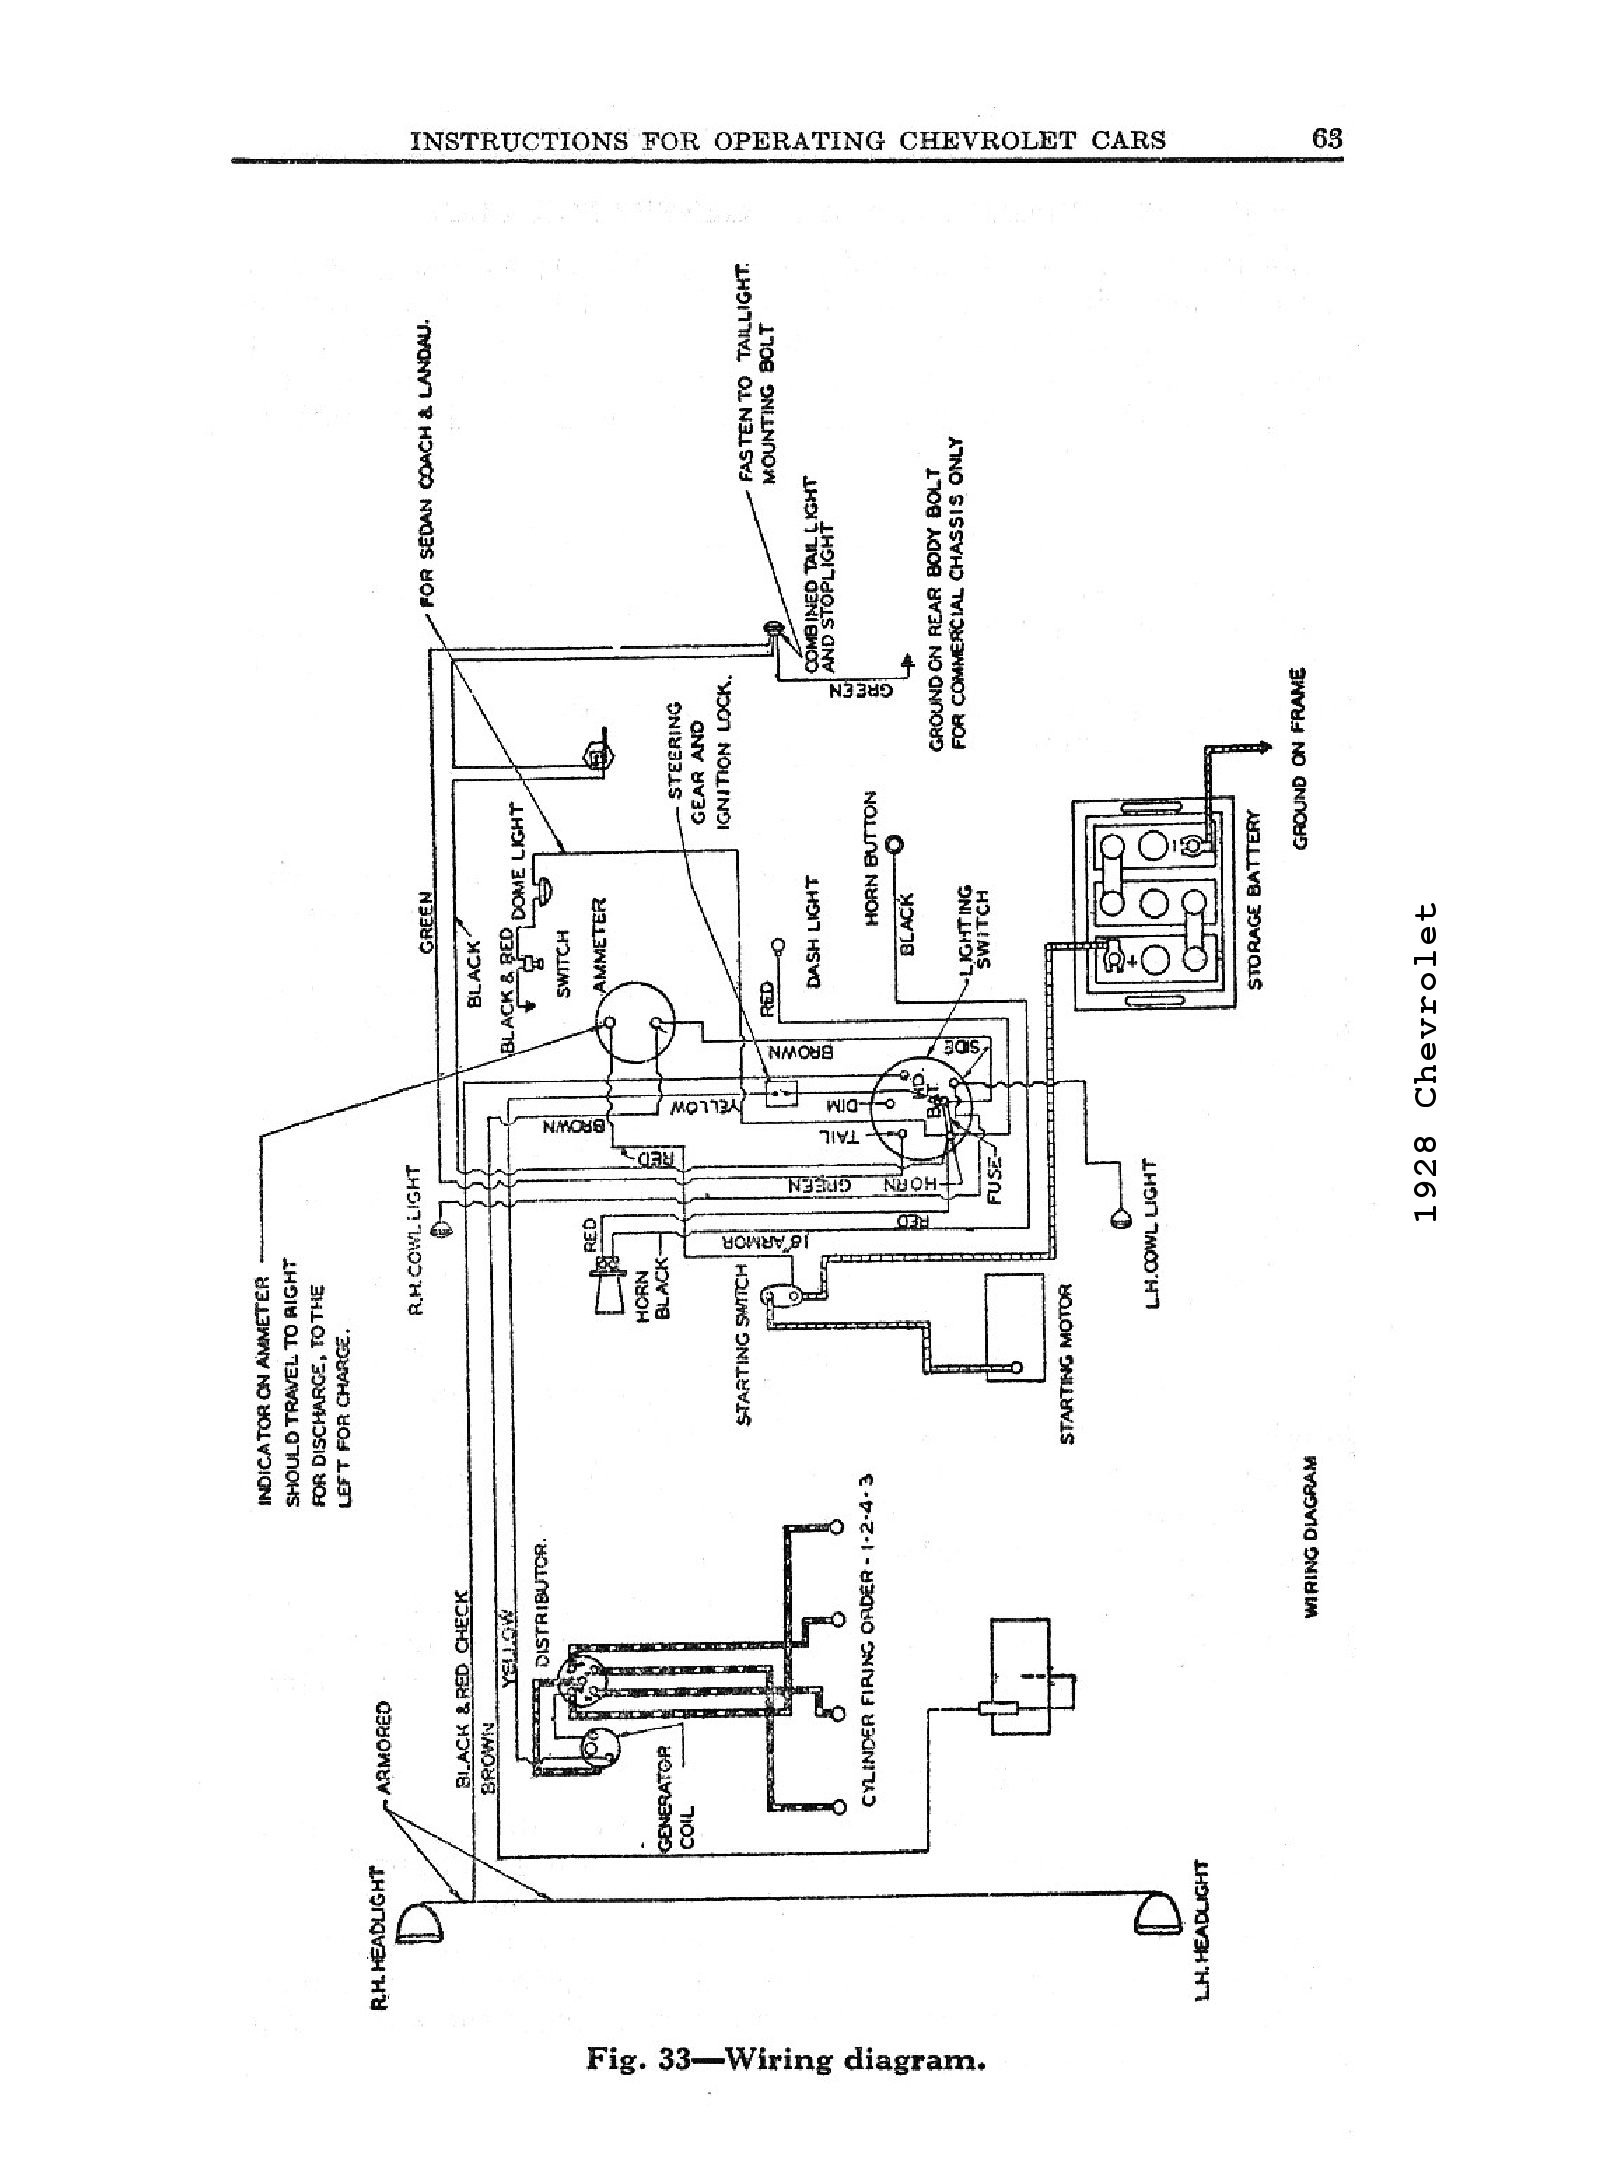 Cim on 1959 Chevy Headlight Wiring Diagram